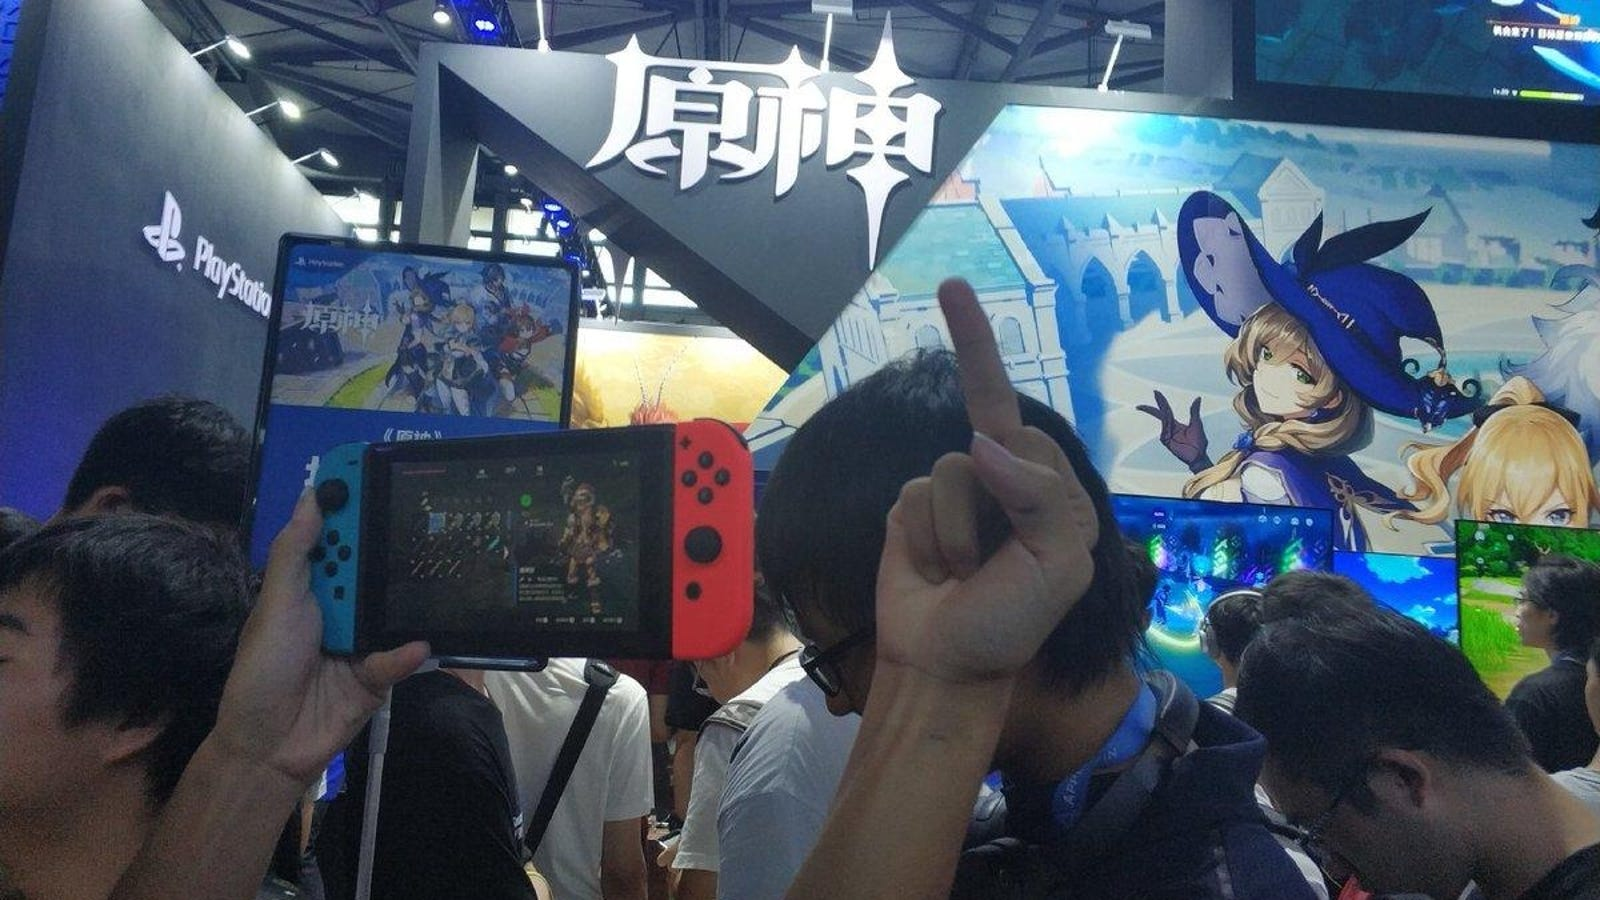 Zelda Fans Protest, Smash PS4 Over Very Similar Chinese Game